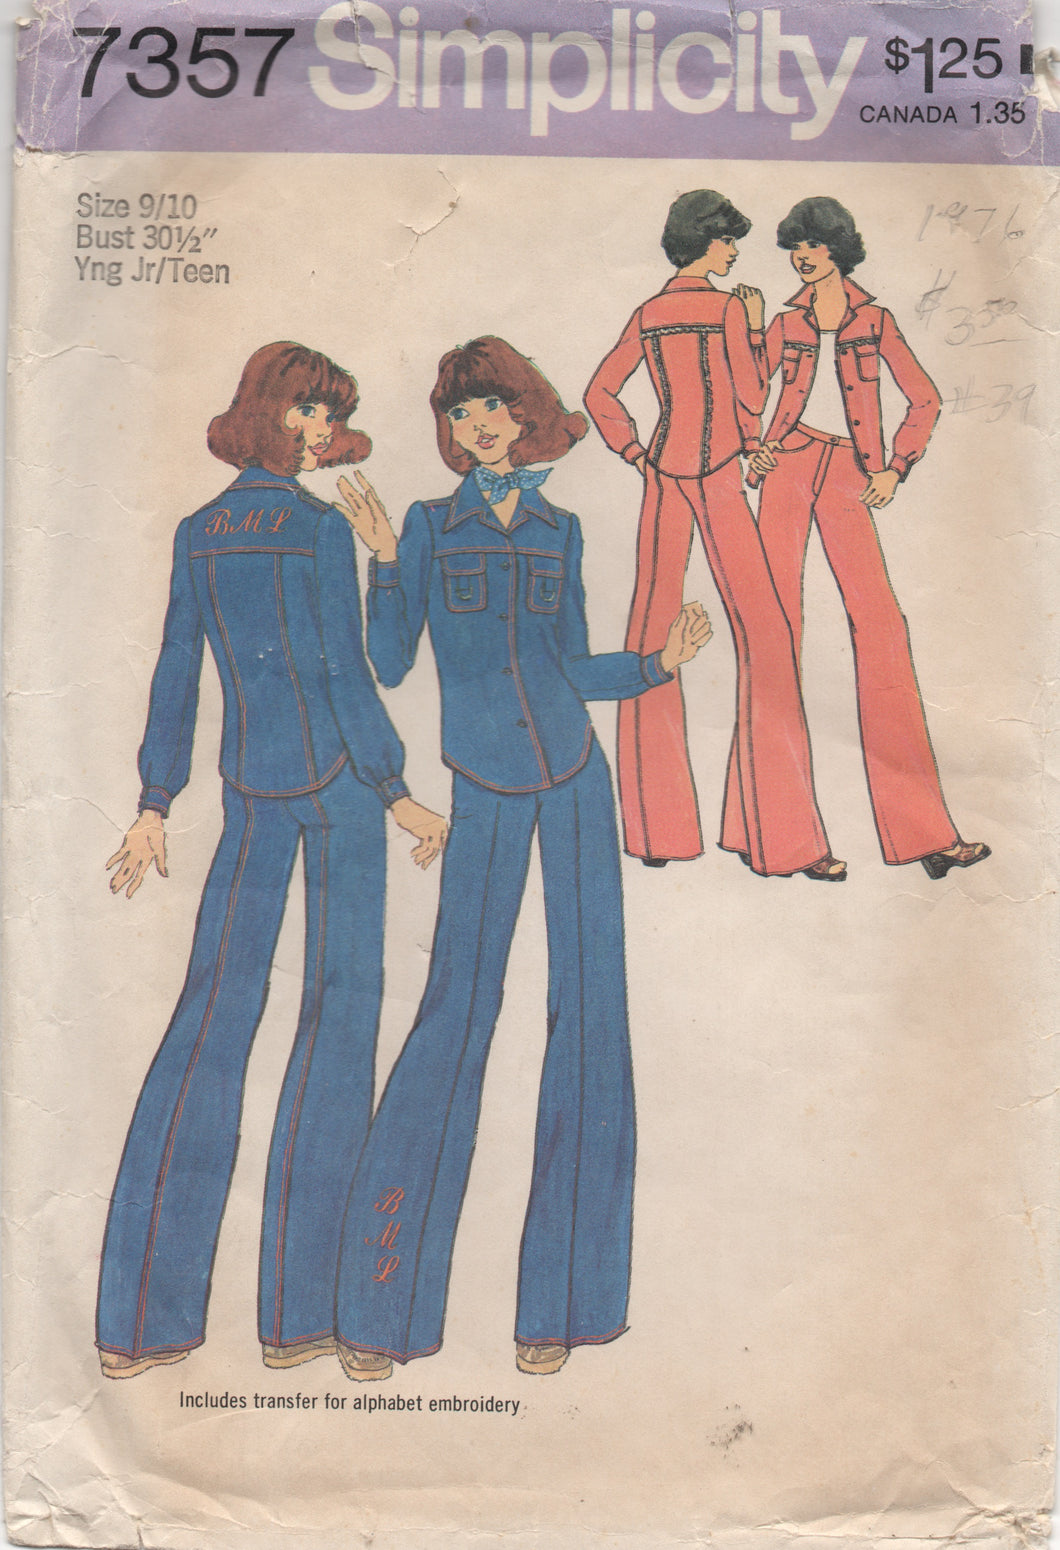 1970's Simplicity Button up Shirt and Wide-Leg Pants - Bust 30.5